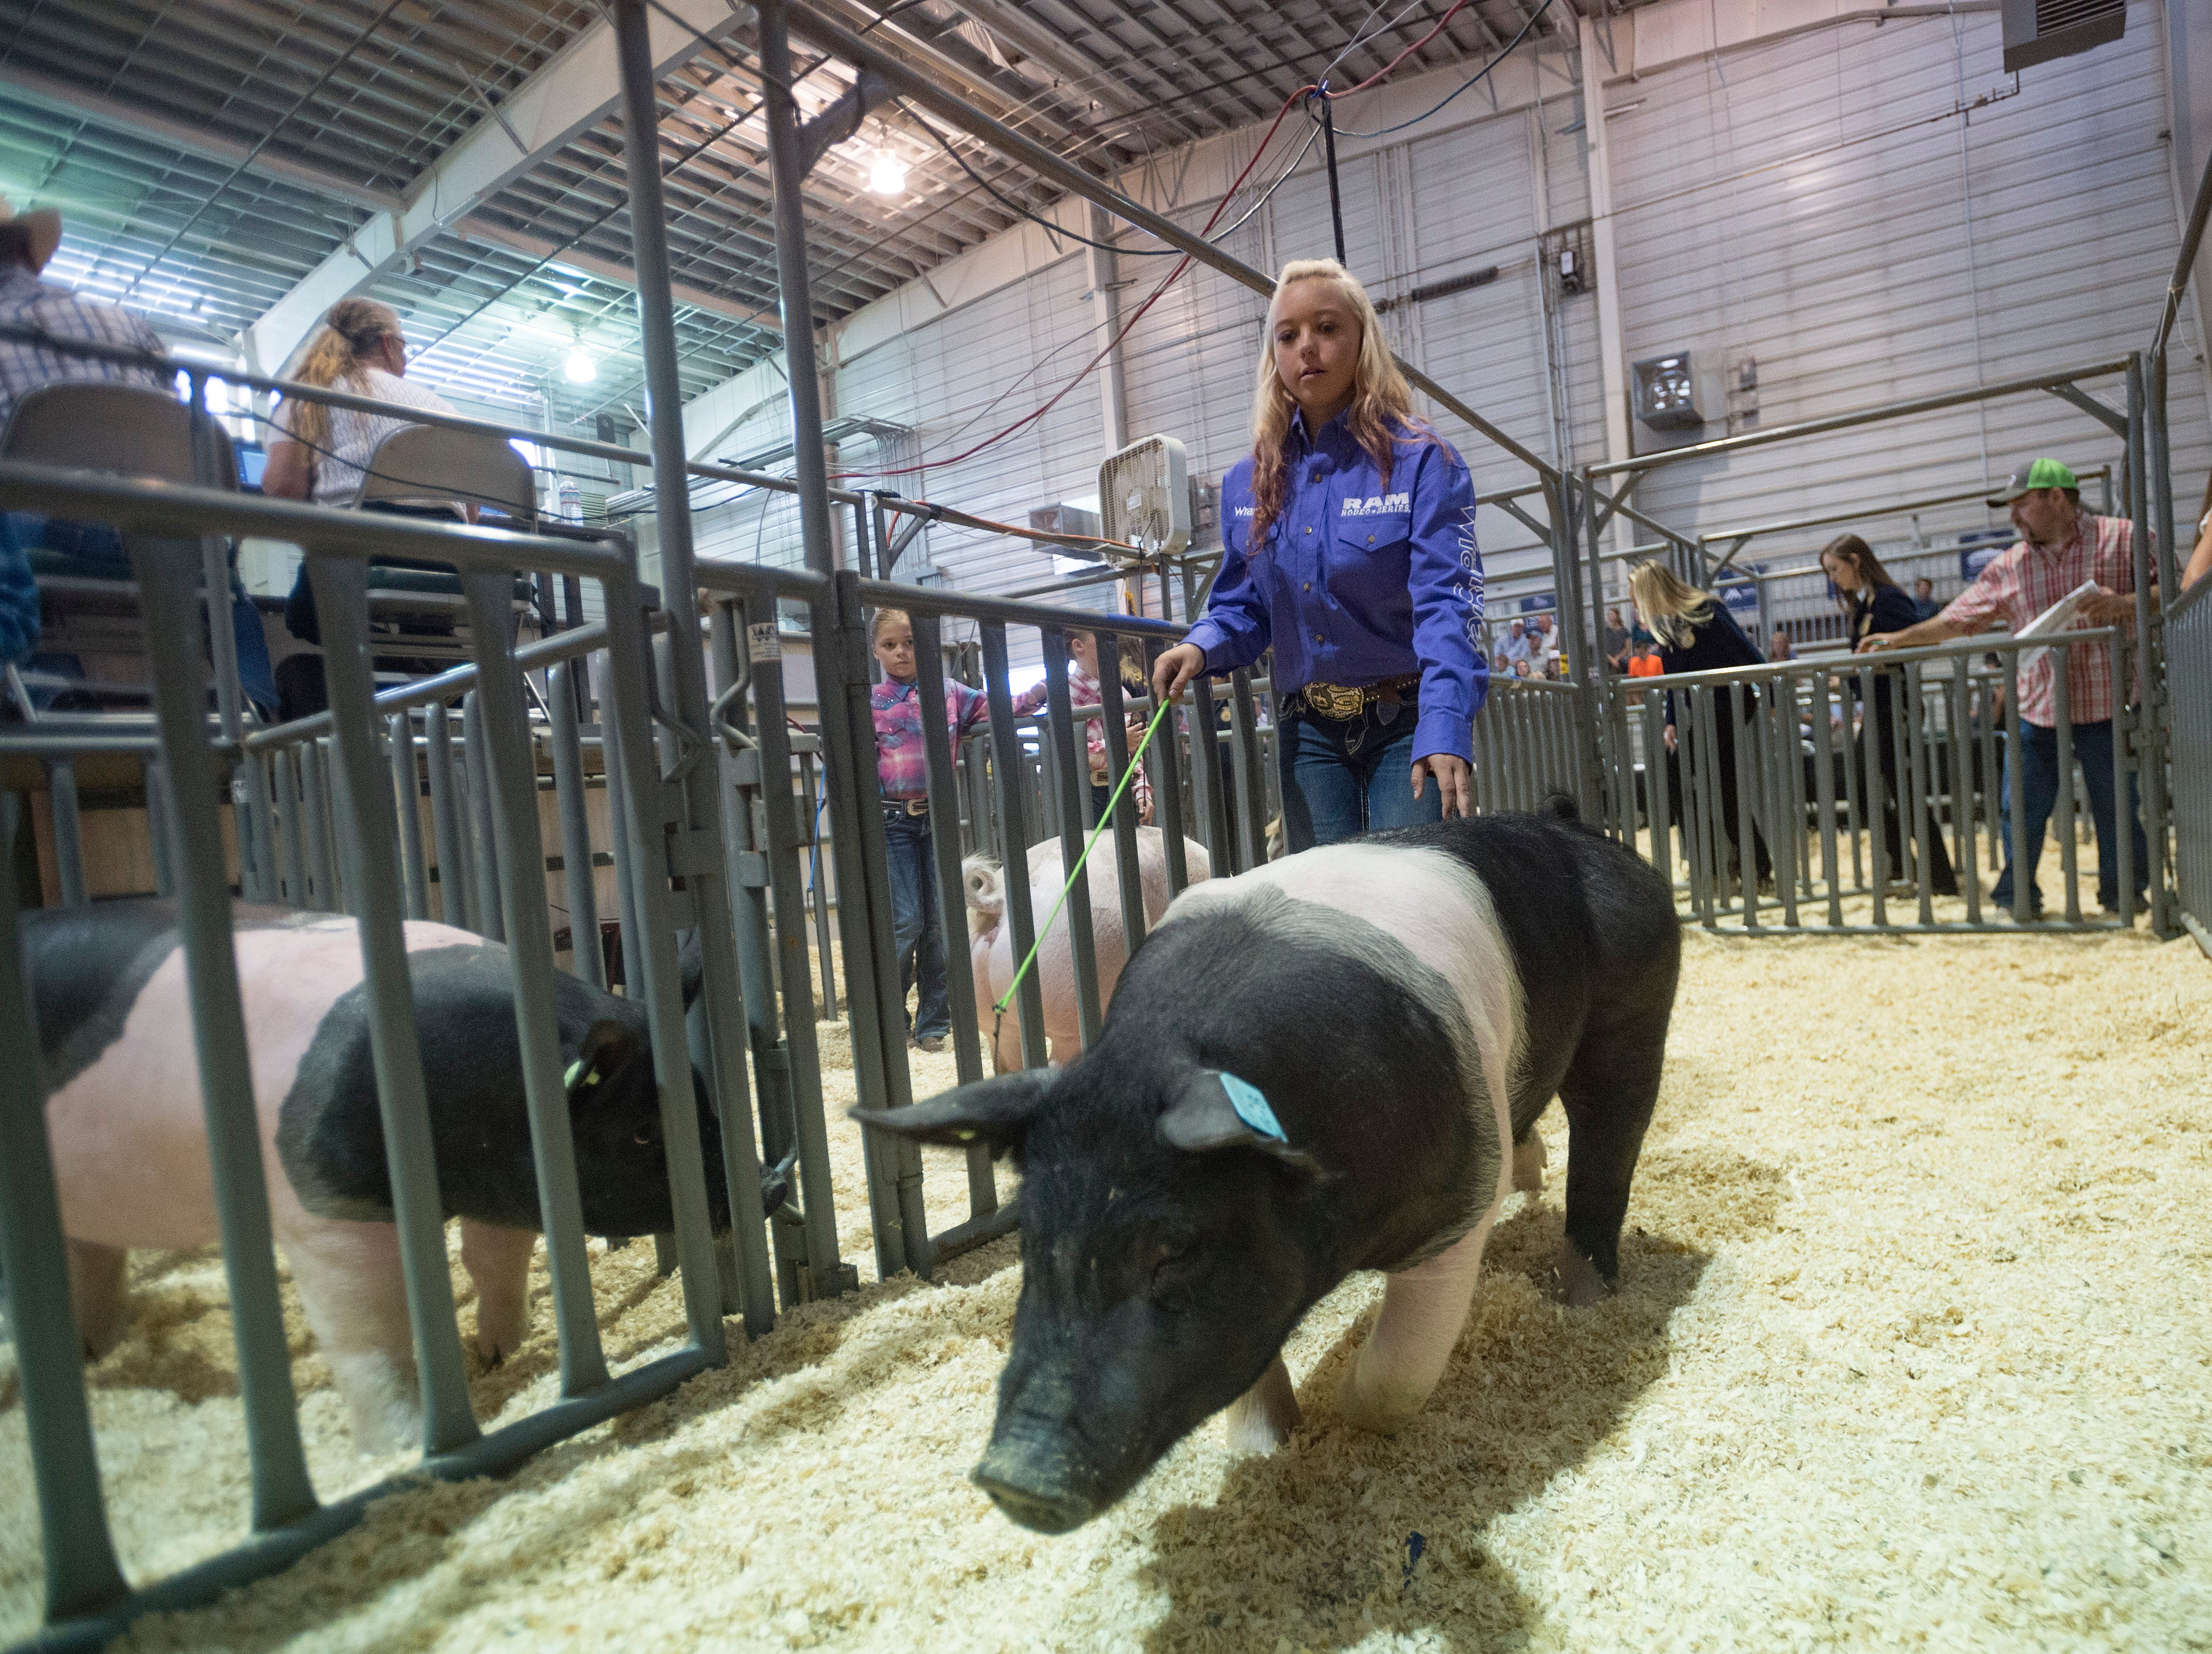 Satin Wilcox coaxes her pig into the sales arena at the Larimer County Fair Youth Livestock Sale at The Ranch in Loveland on Wednesday, August 8, 2018.